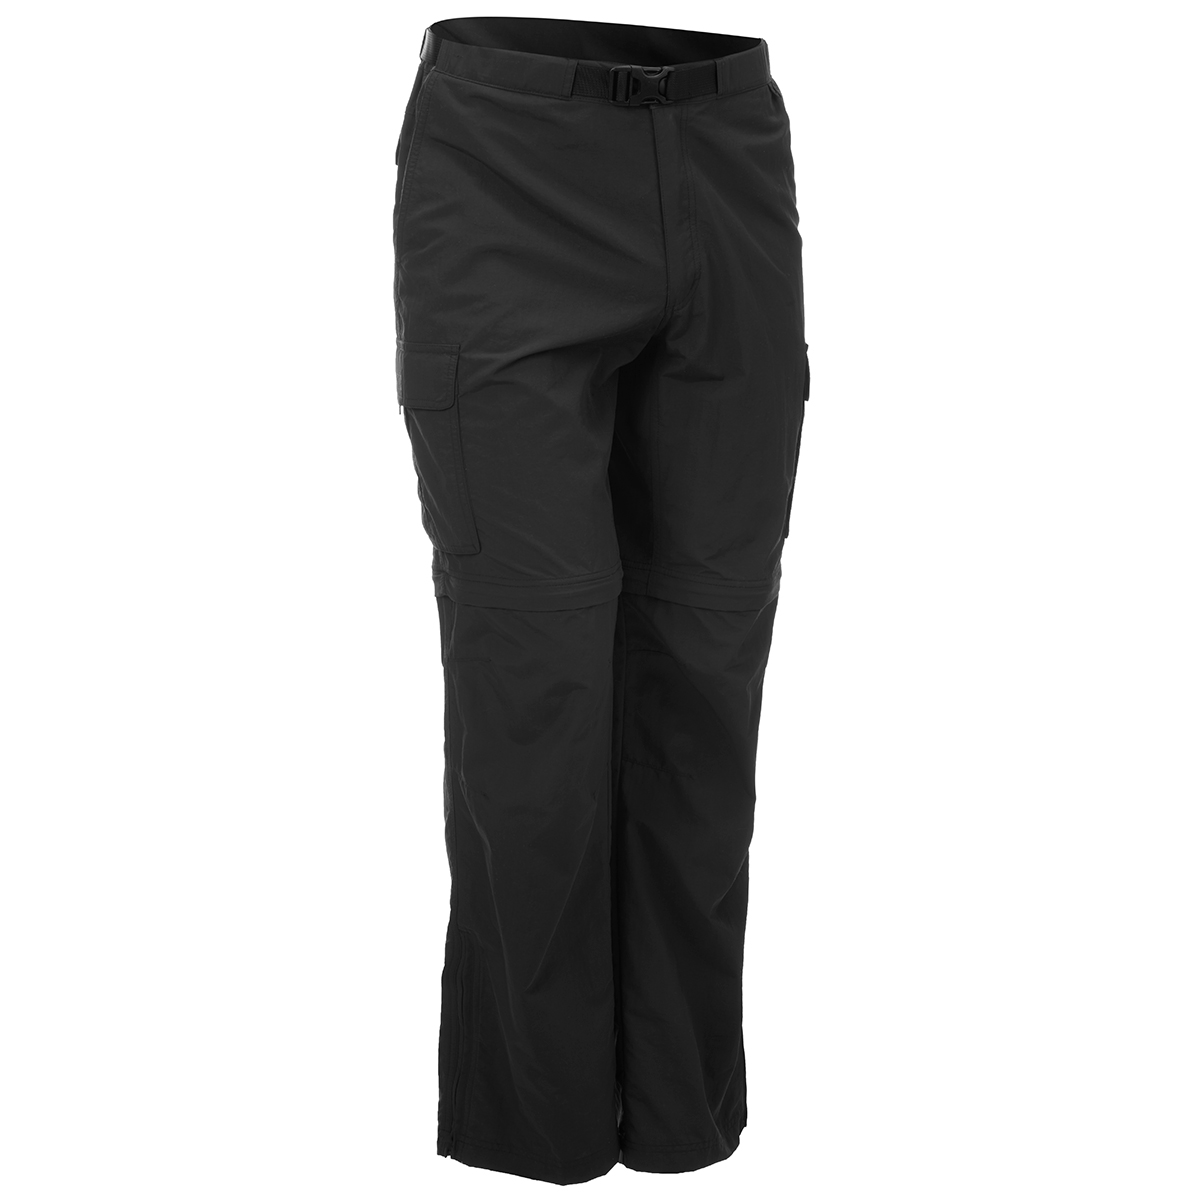 Ems Men's Camp Cargo Zip-Off Pants - Black, 35/32